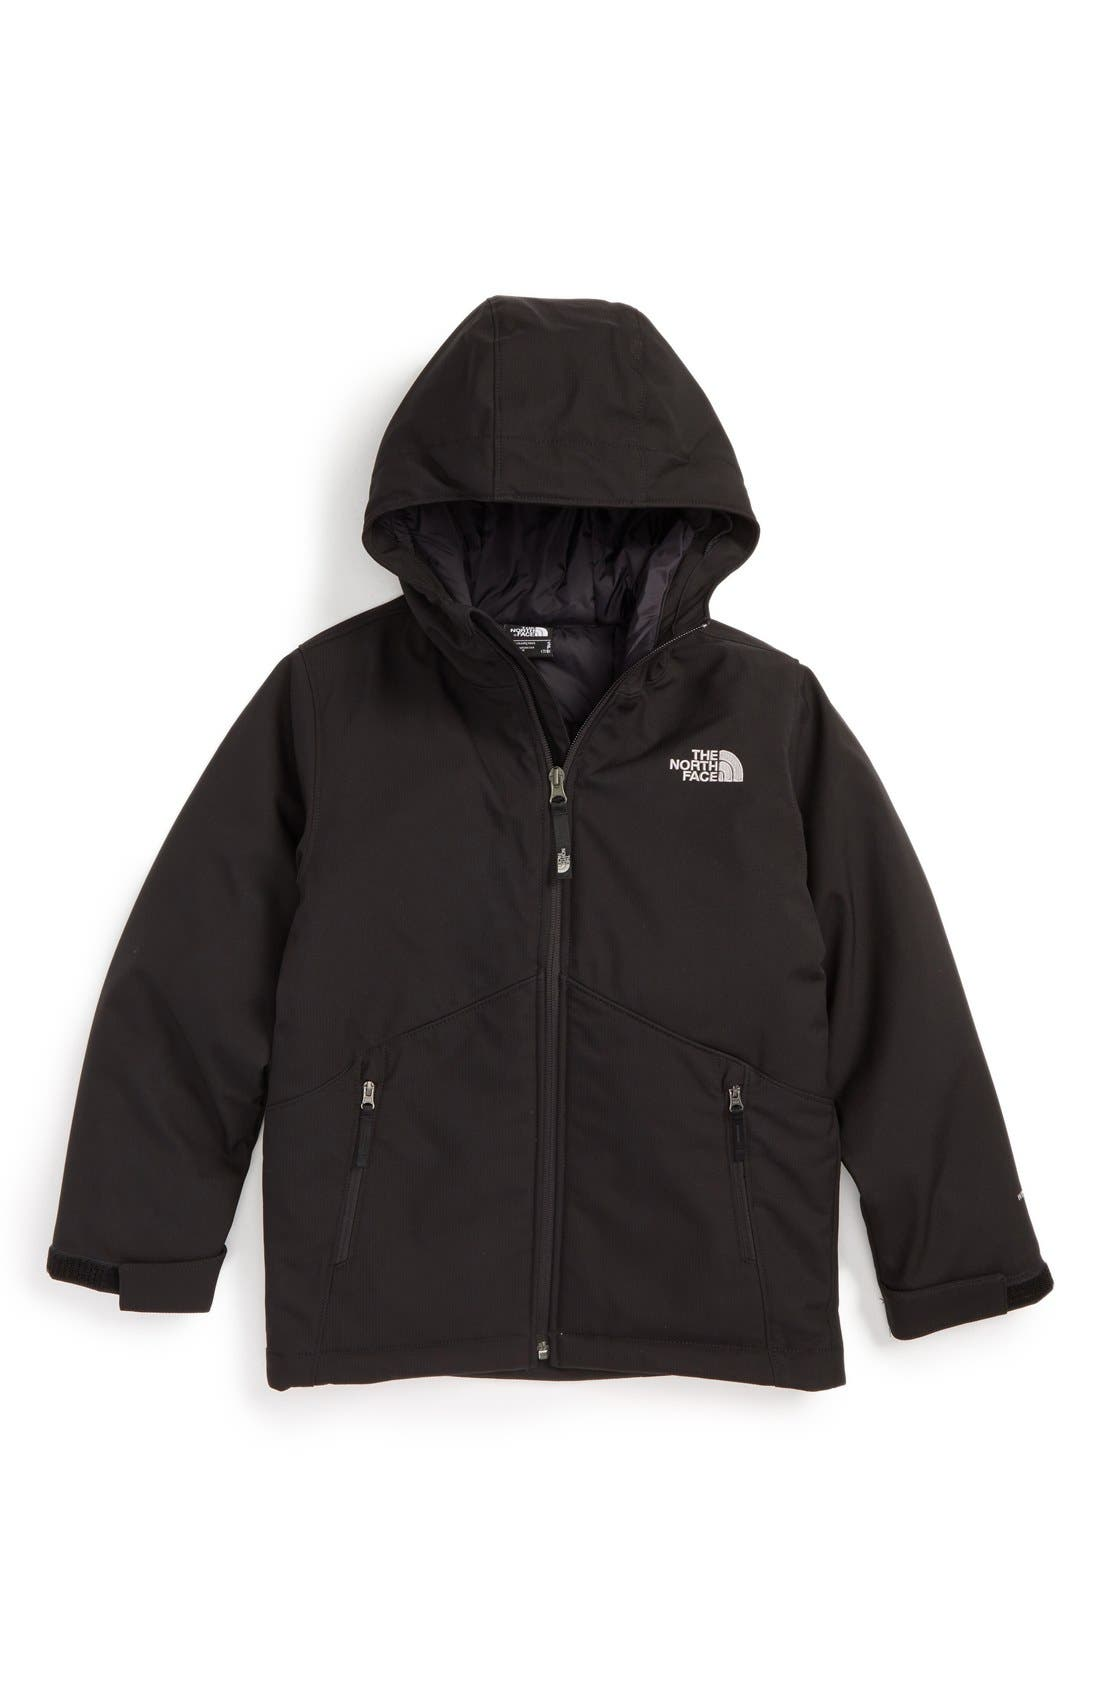 Main Image - The North Face 'Apex Elevation' Hooded Jacket (Big Boys)